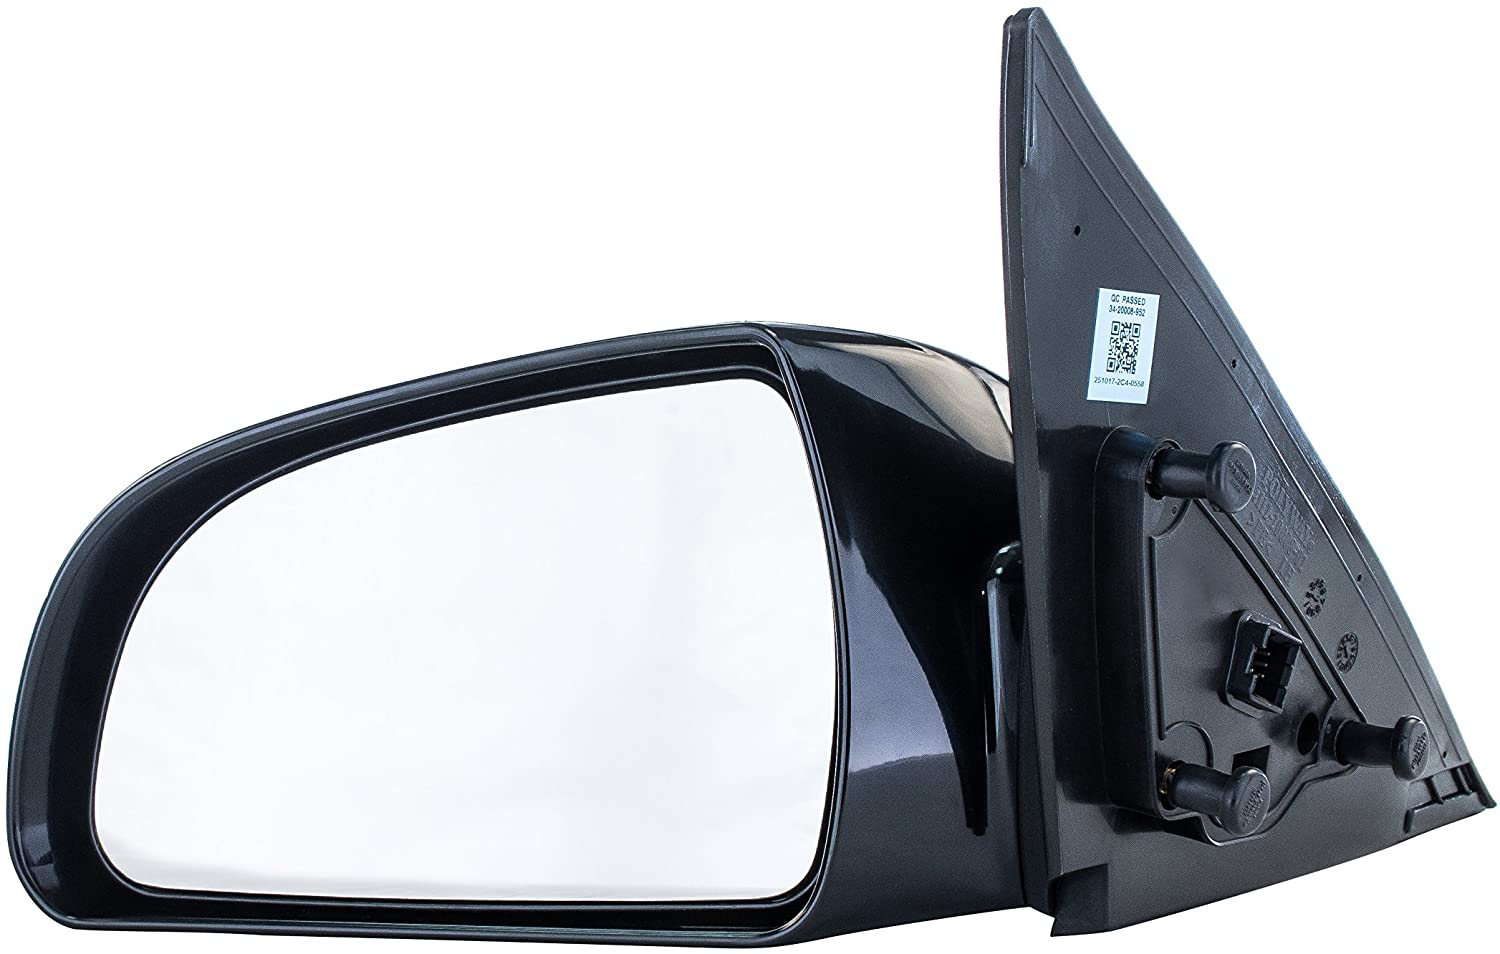 Make Auto Parts Manufacturing HY1321149 New Front Right//Passenger Side Power Operated Heated Non-Folding Door Mirror For Hyundai Sonata 2006-2010